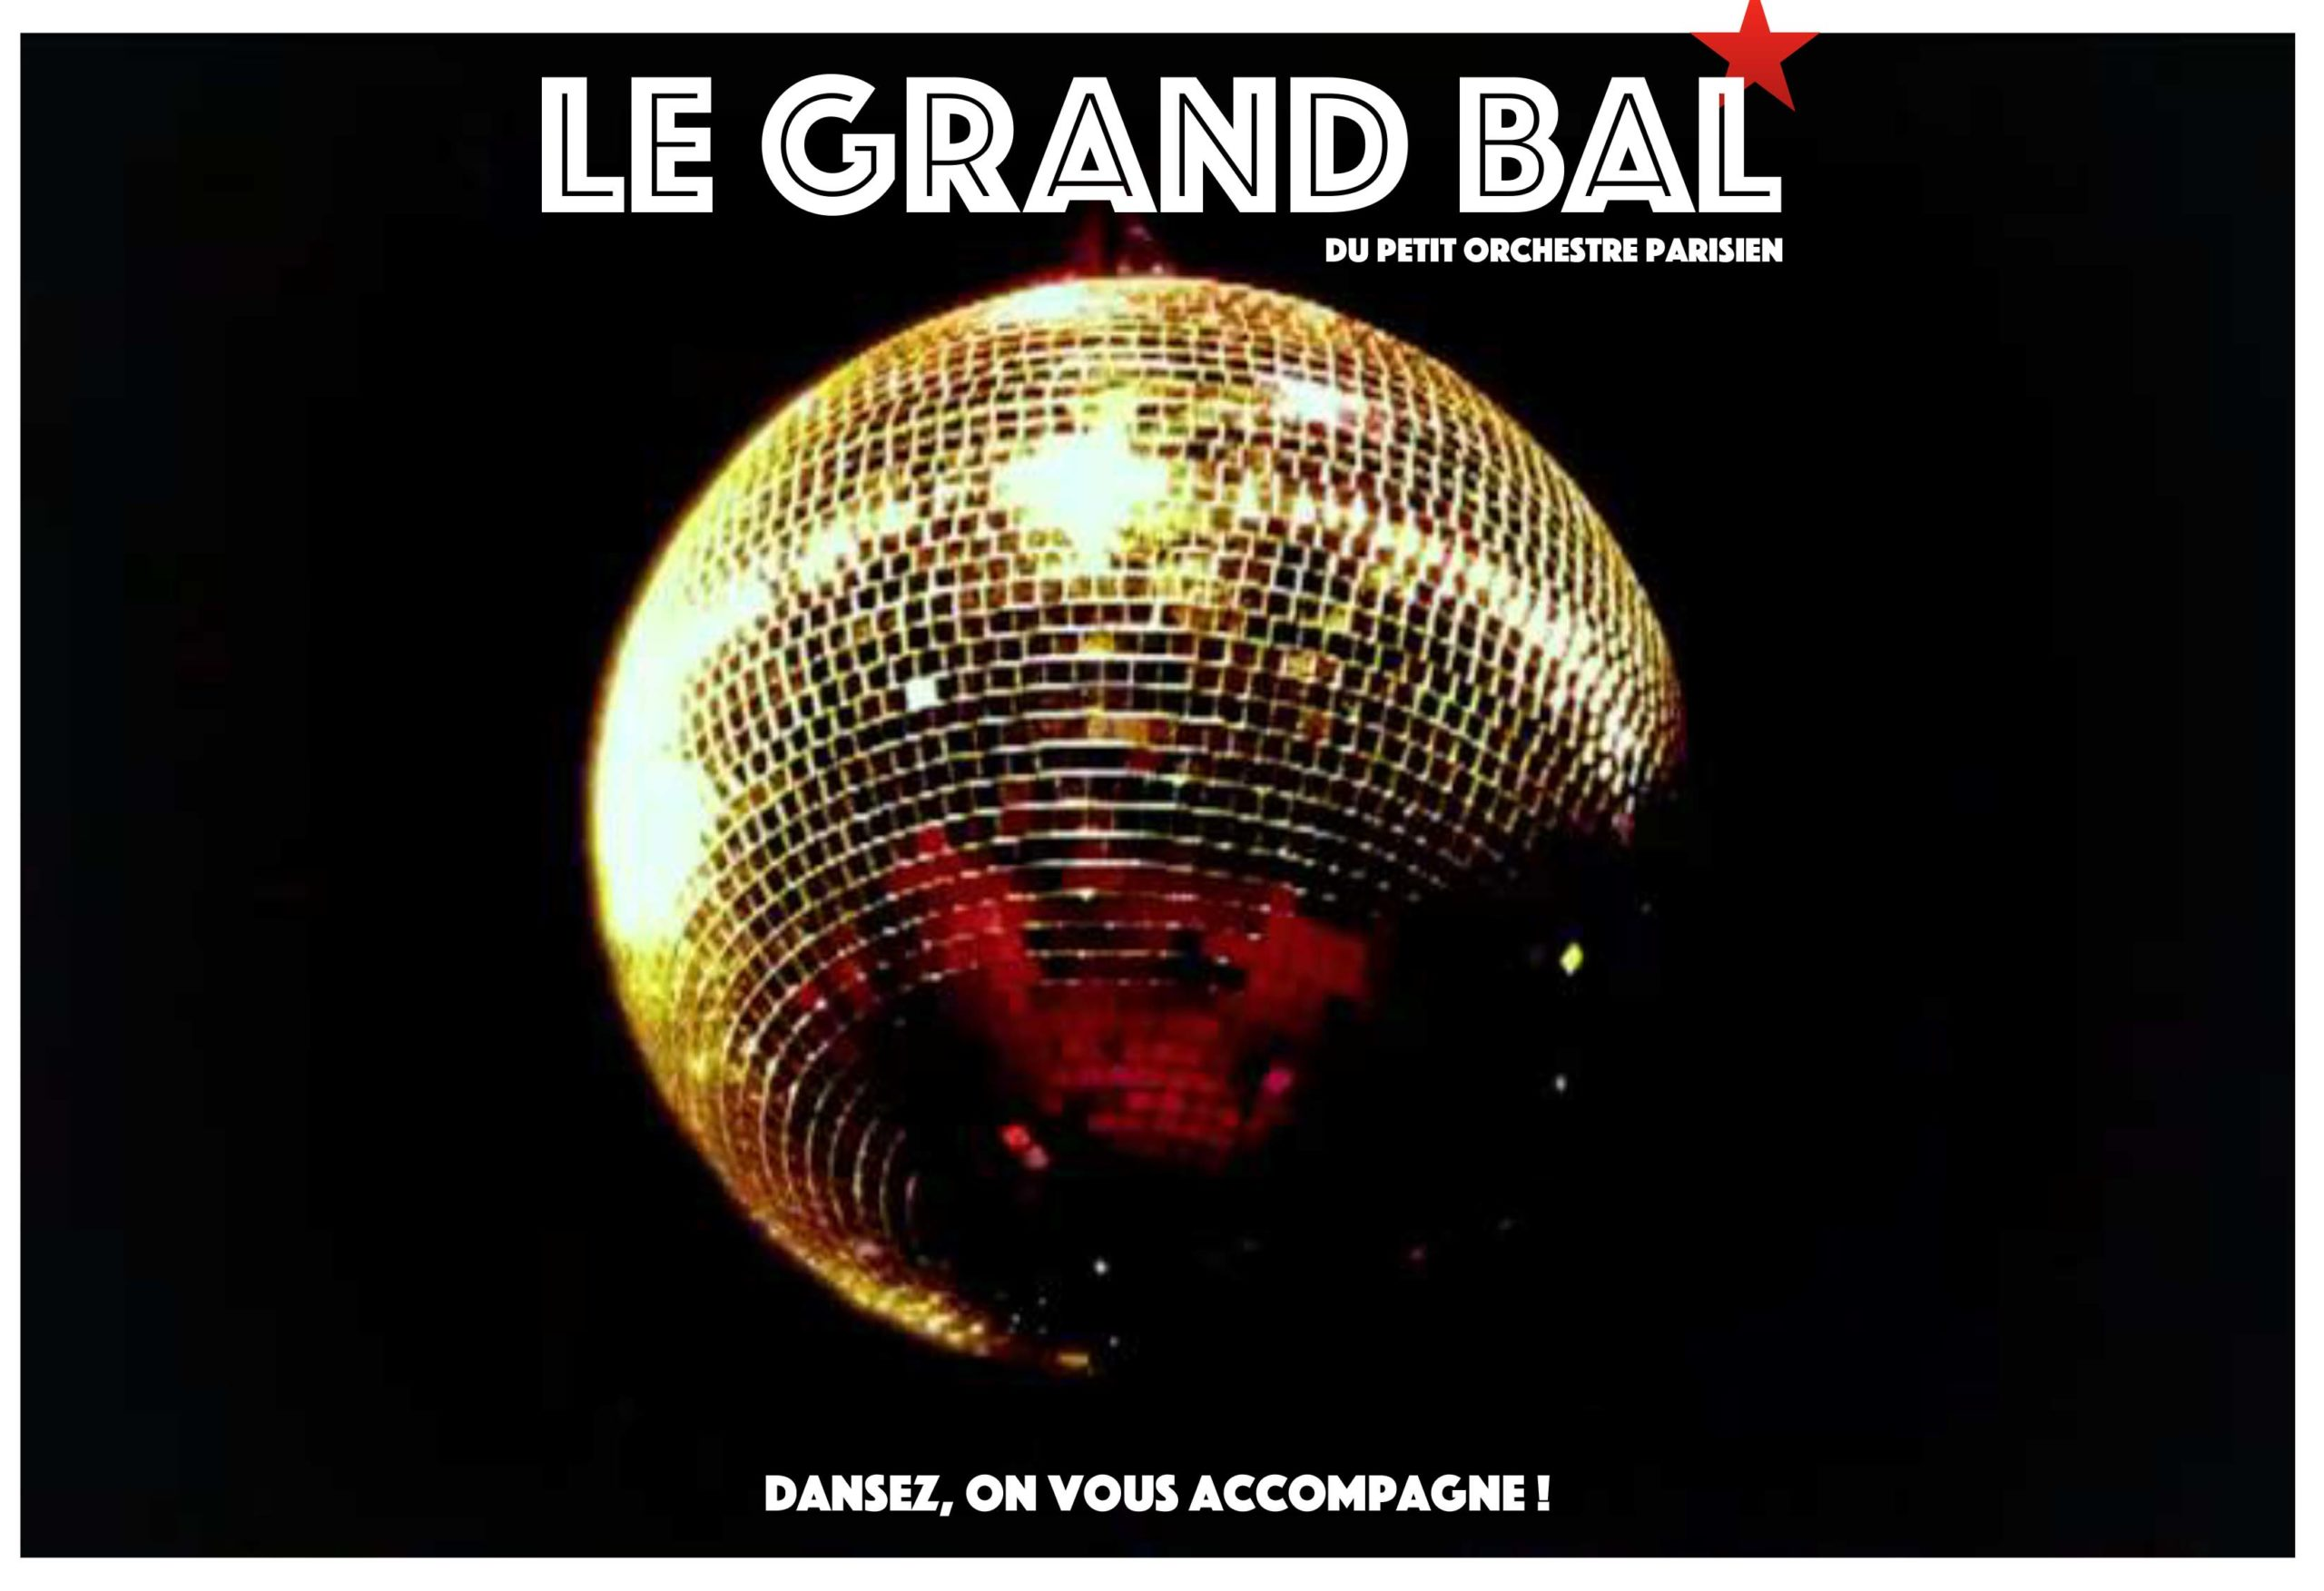 [object object] Mère Grand web Le Grand Bal 2017 1 1 scaled